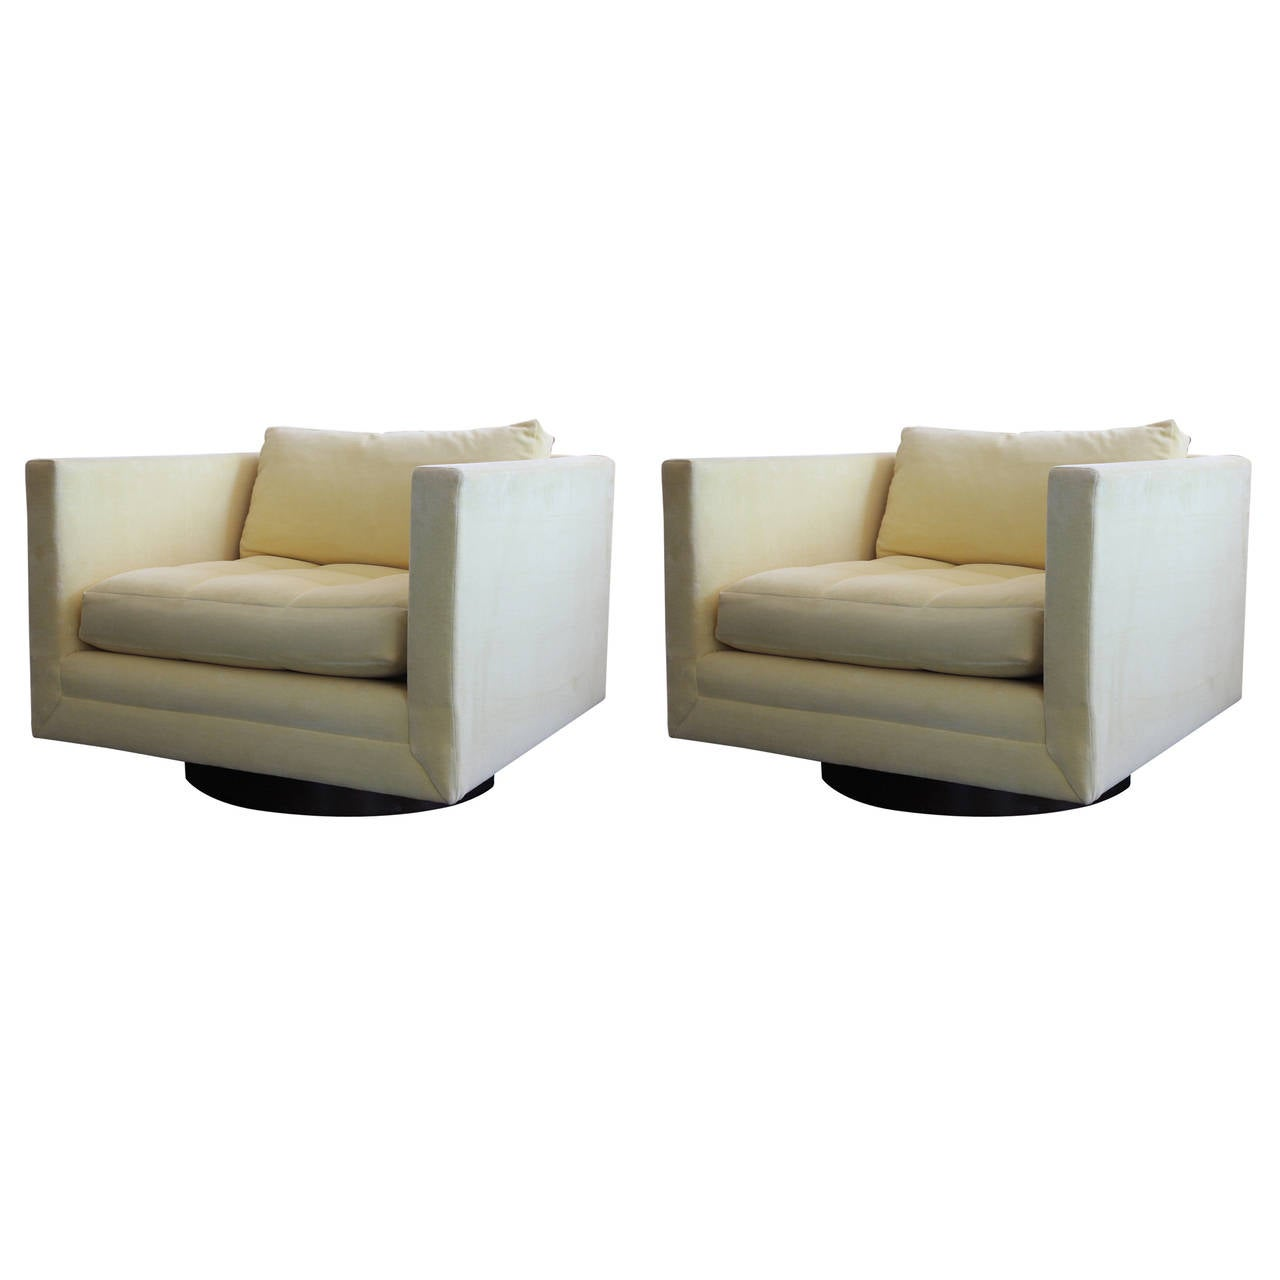 Pair Of Swivel Cube Club Chairs By Harvey Probber At 1stdibs